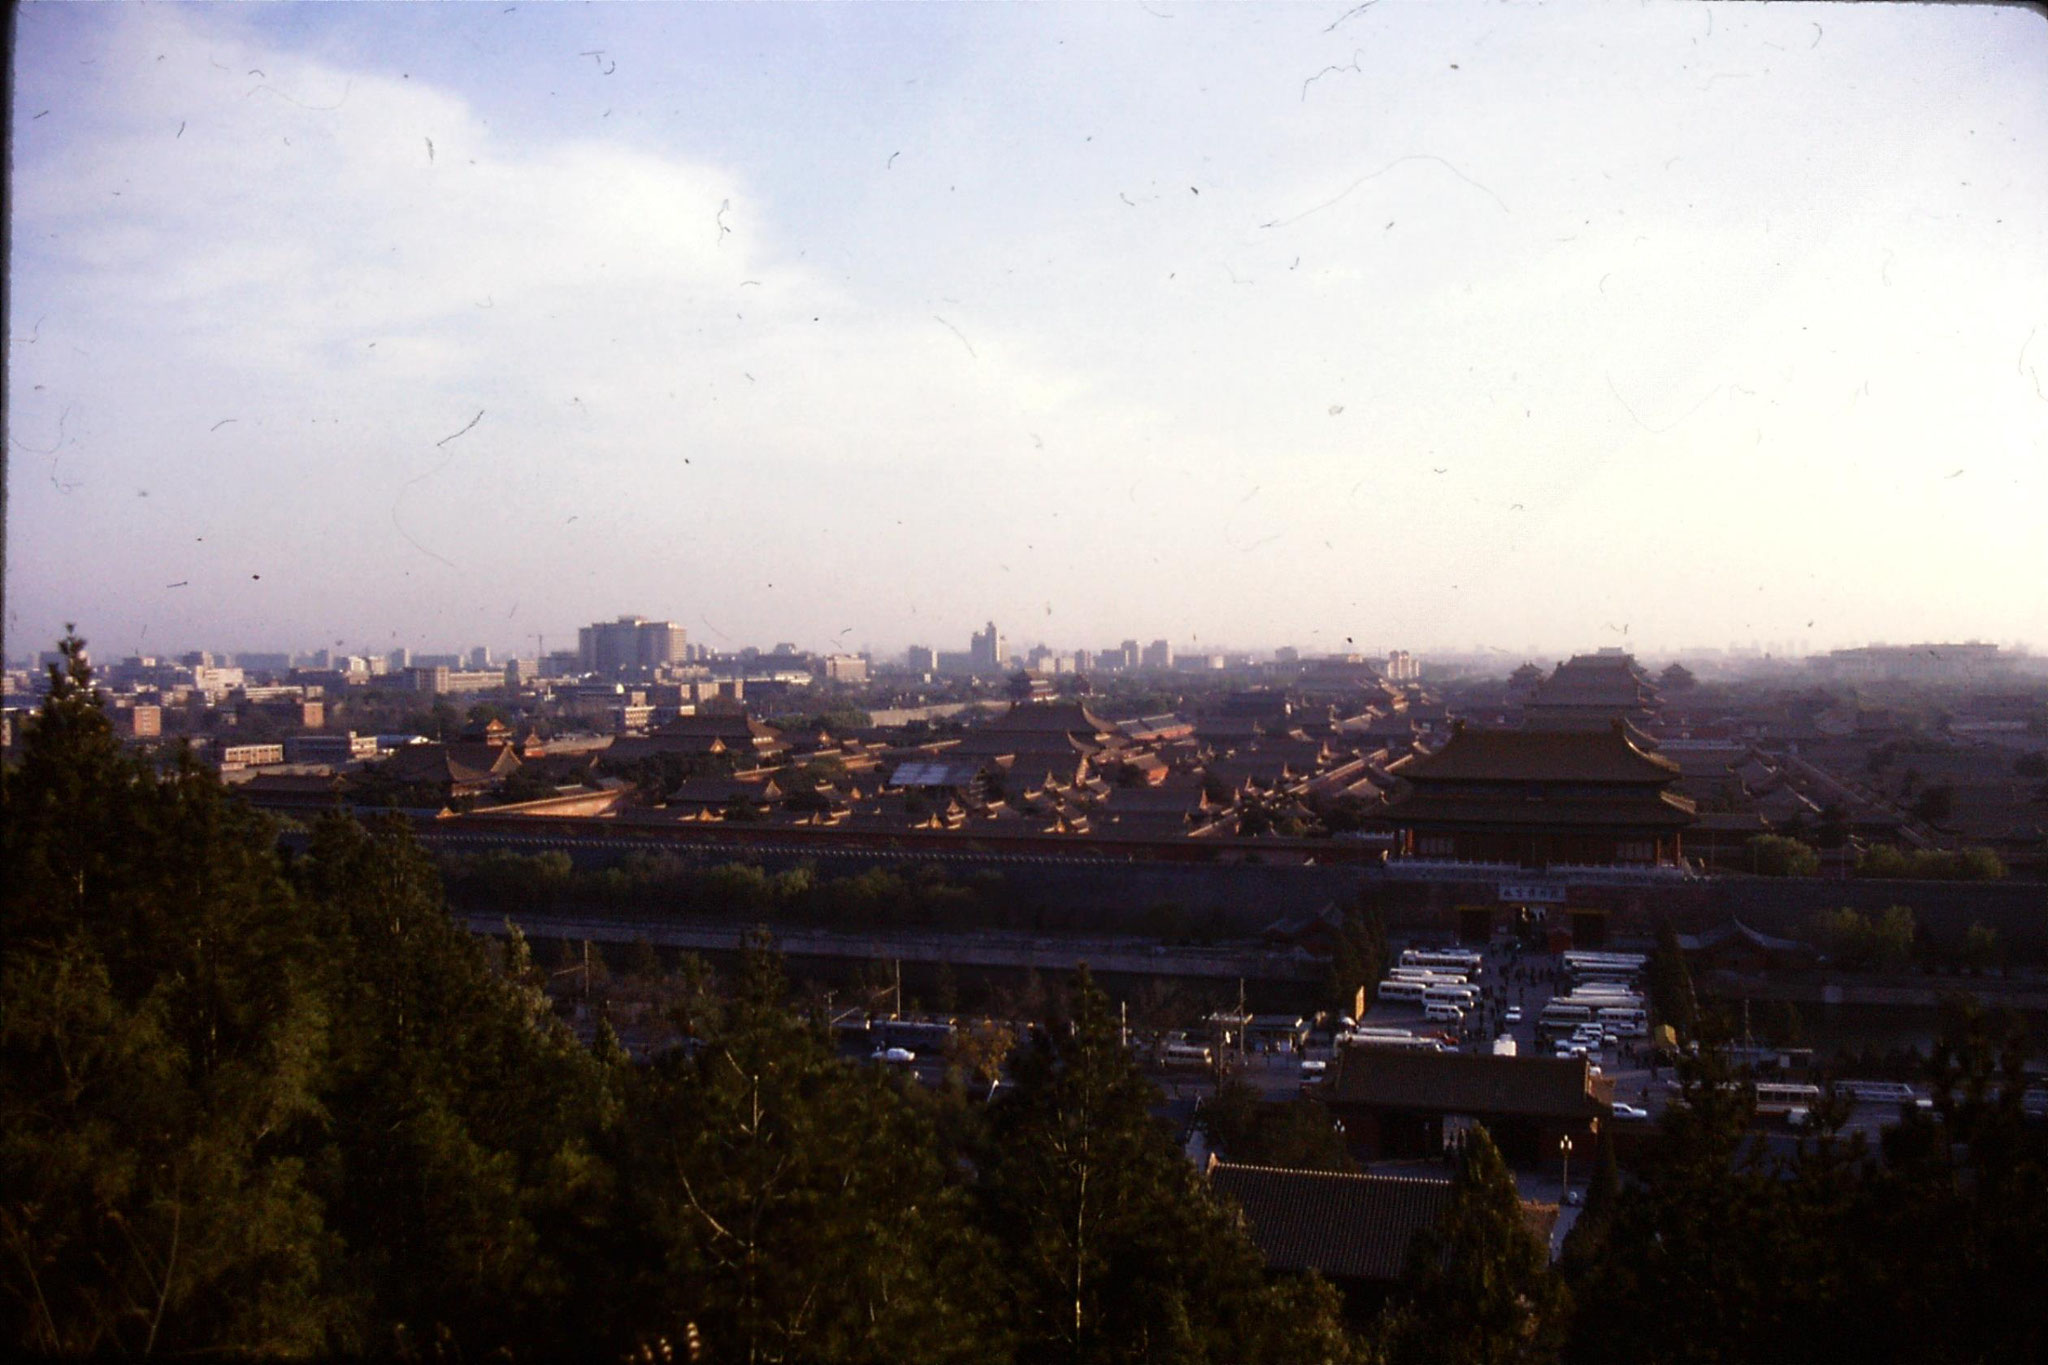 18/11/1988: 31: view of Forbidden City from Coal Hill